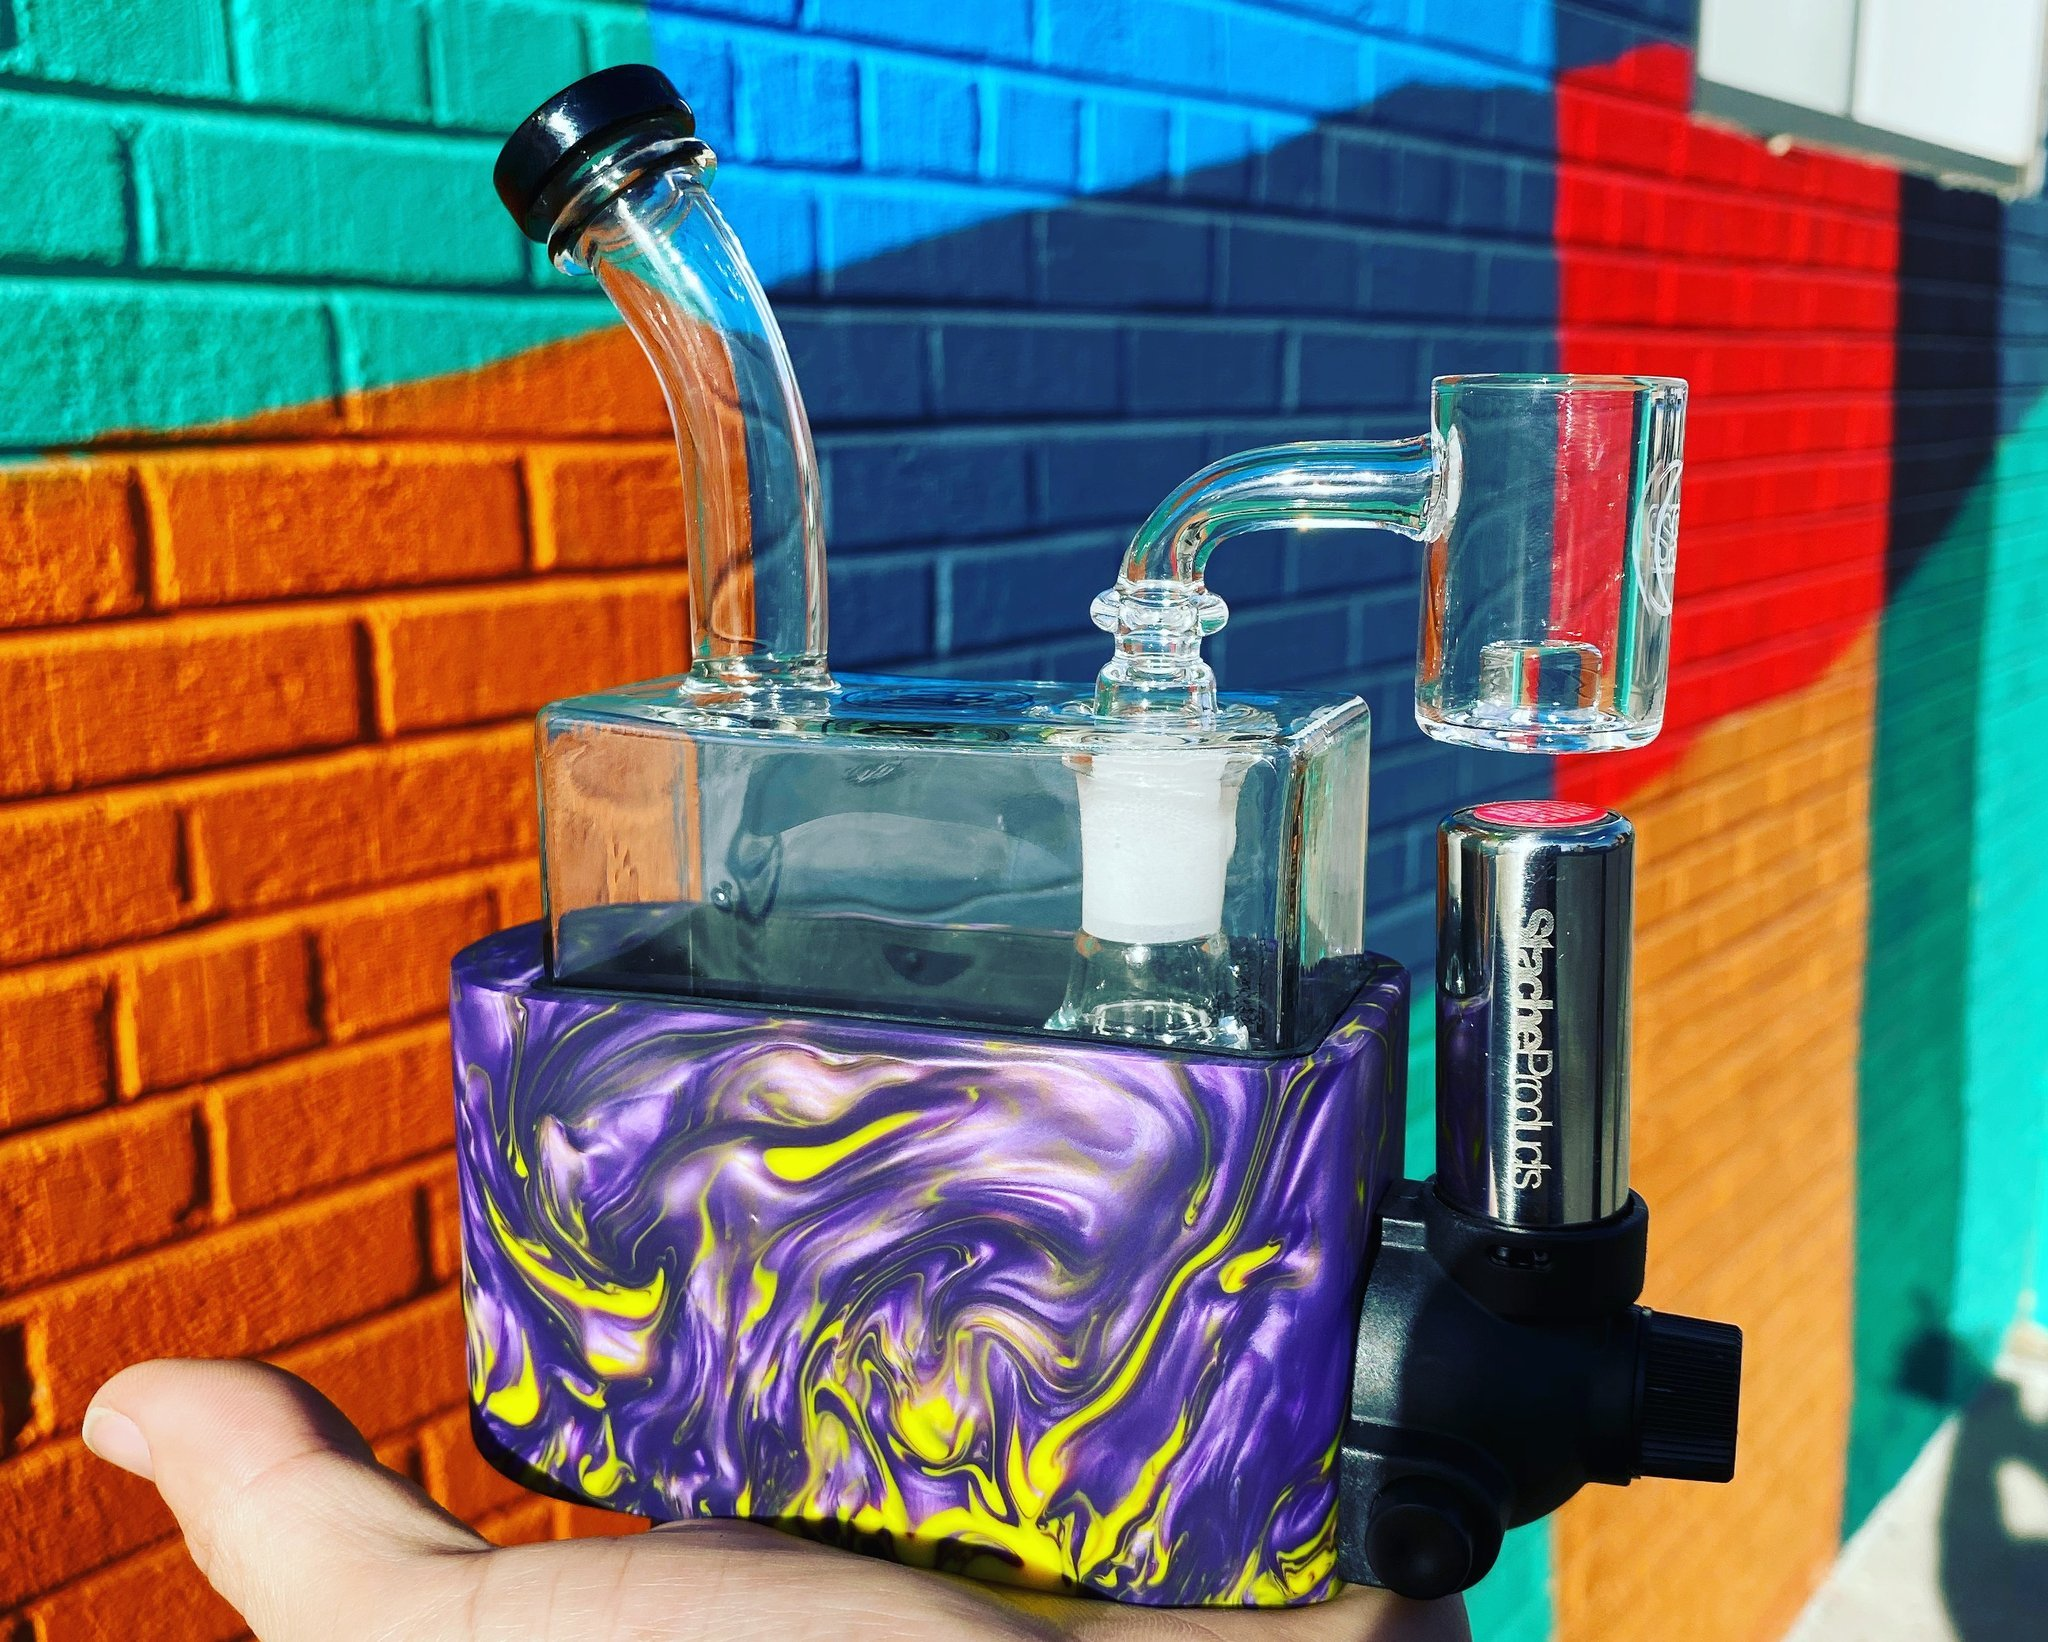 RiO MakeOver Dab Rig by Stache Product – Detailed Review